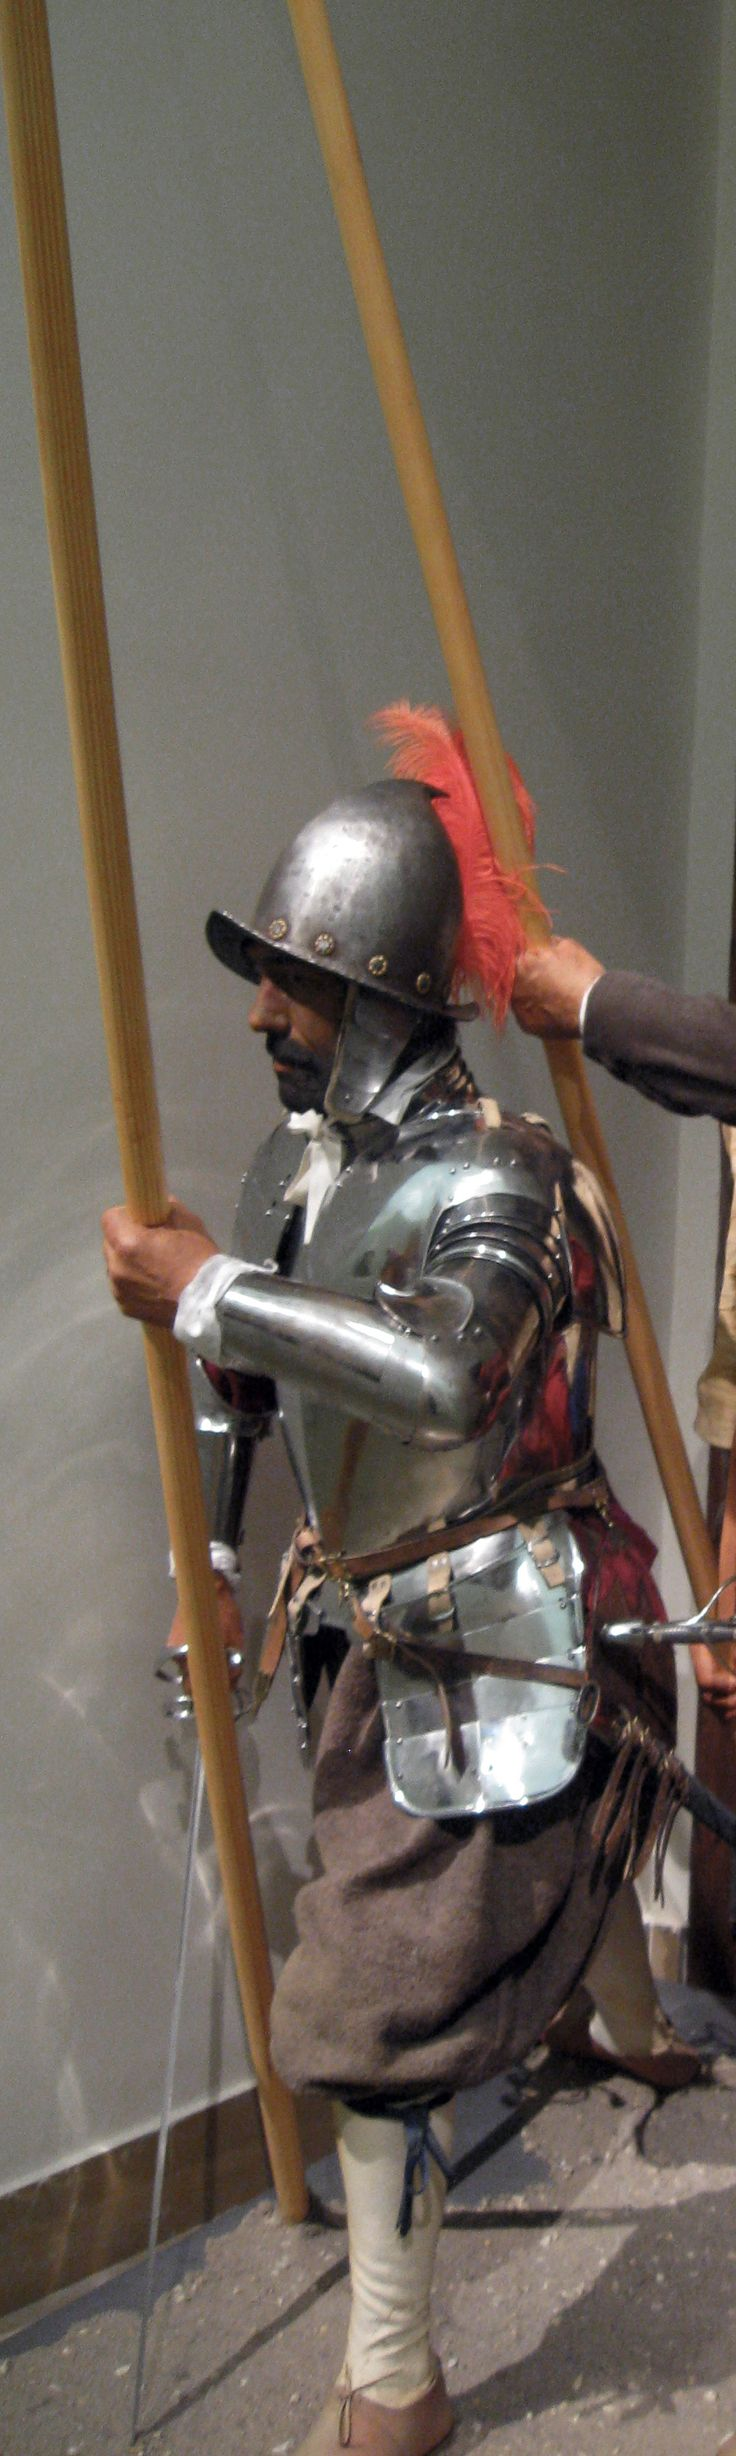 Spanish Tercio Pikeman. Armored with a coselete (the chest piece). Figure by Gerry Embleton, Time Machine; Spanish Army Museum)